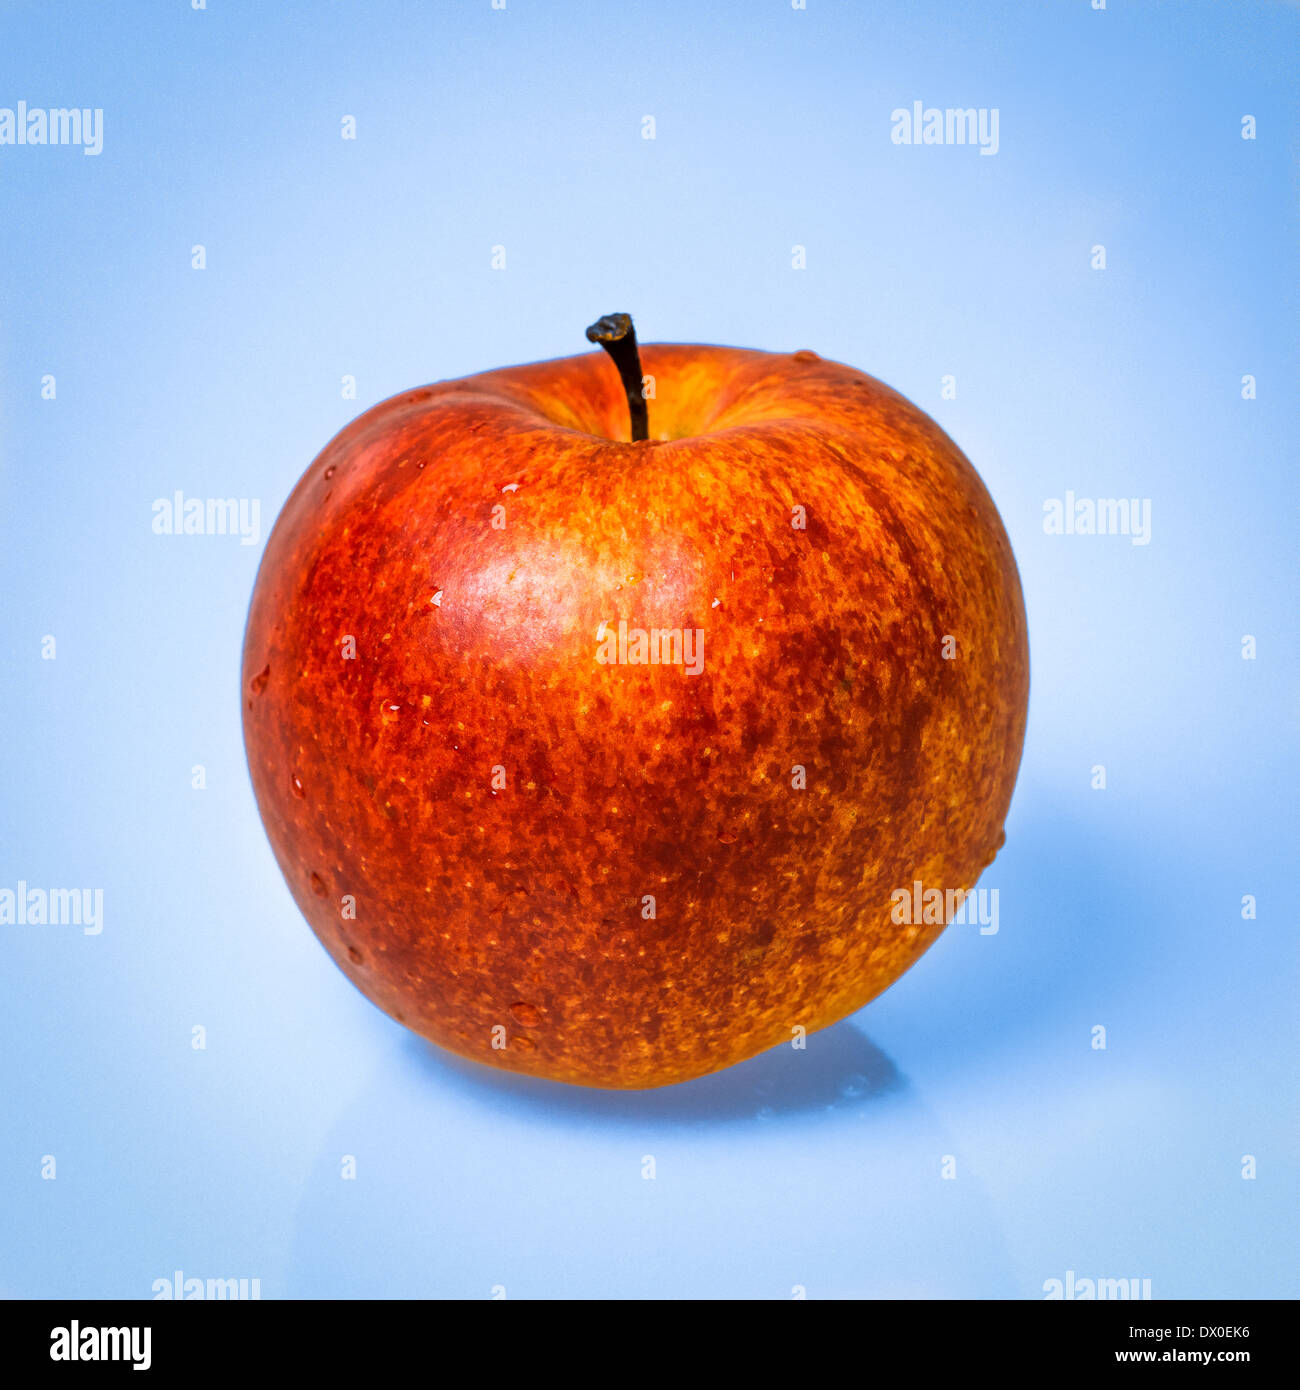 Red apple fruit against light blue background. Single object. Square format photography. - Stock Image